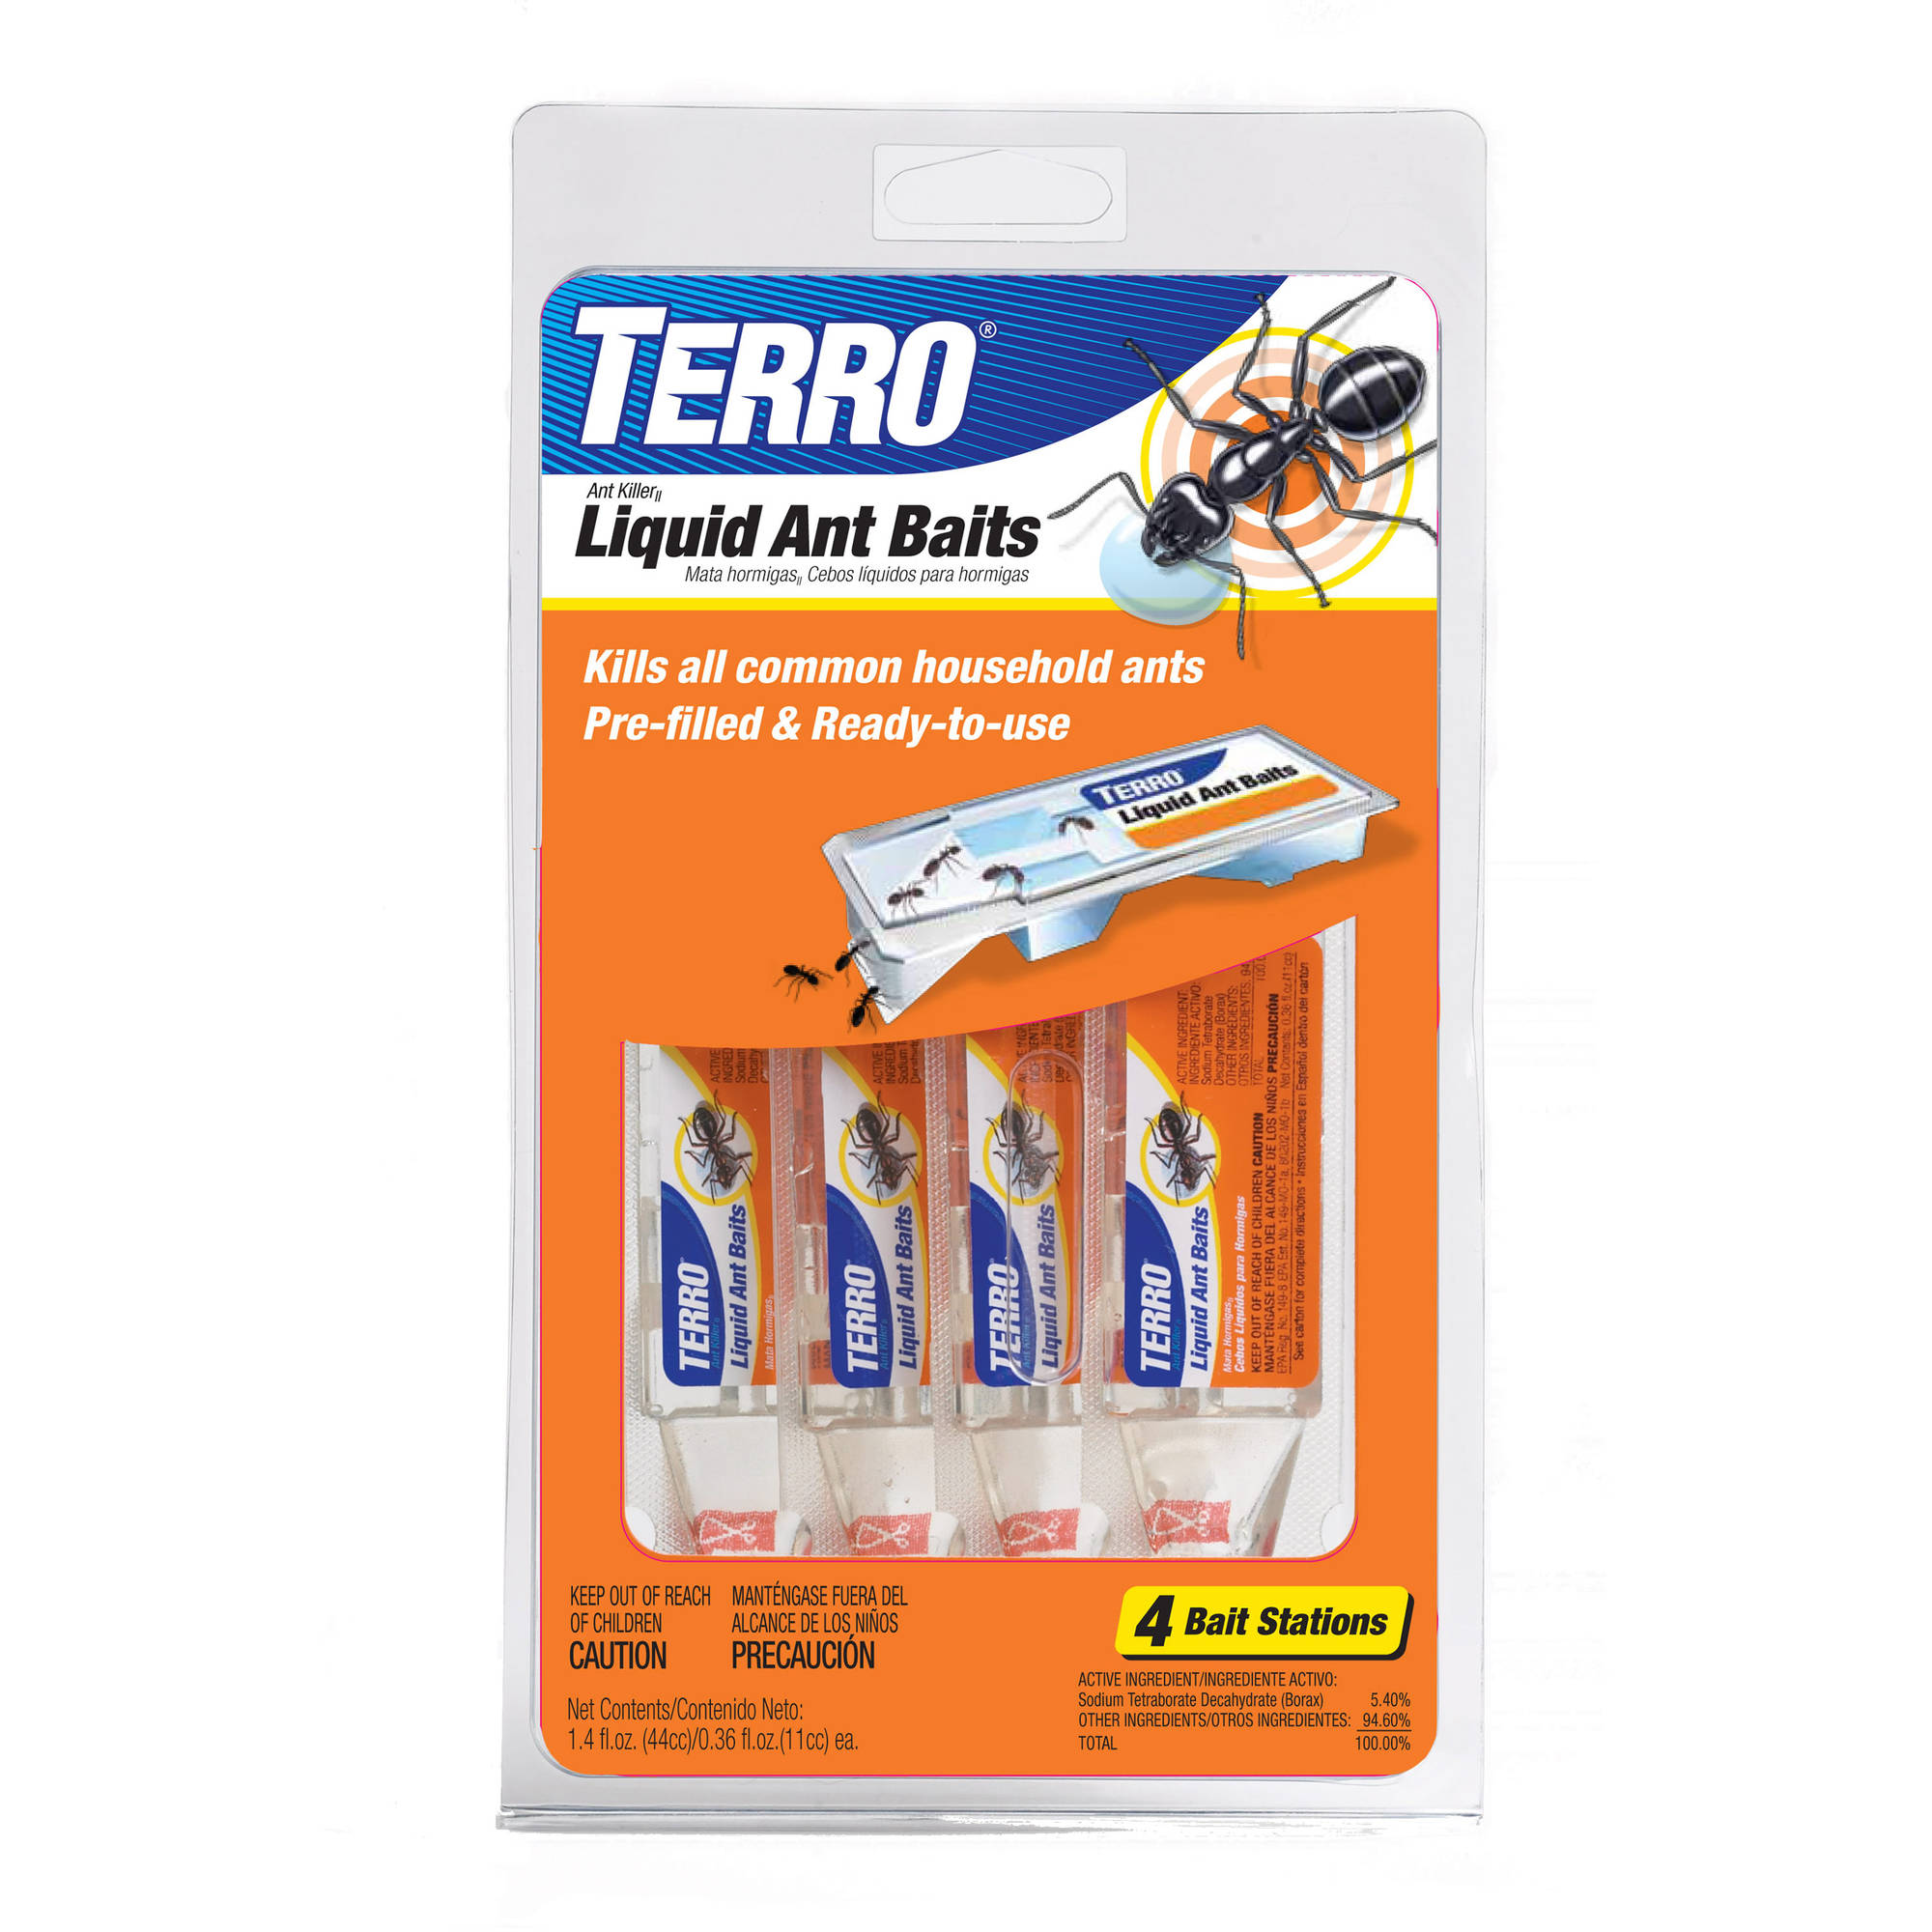 Terro: Indoor/Outdoor Liquid Baits Ant Killer II, 1.4 Fl Oz